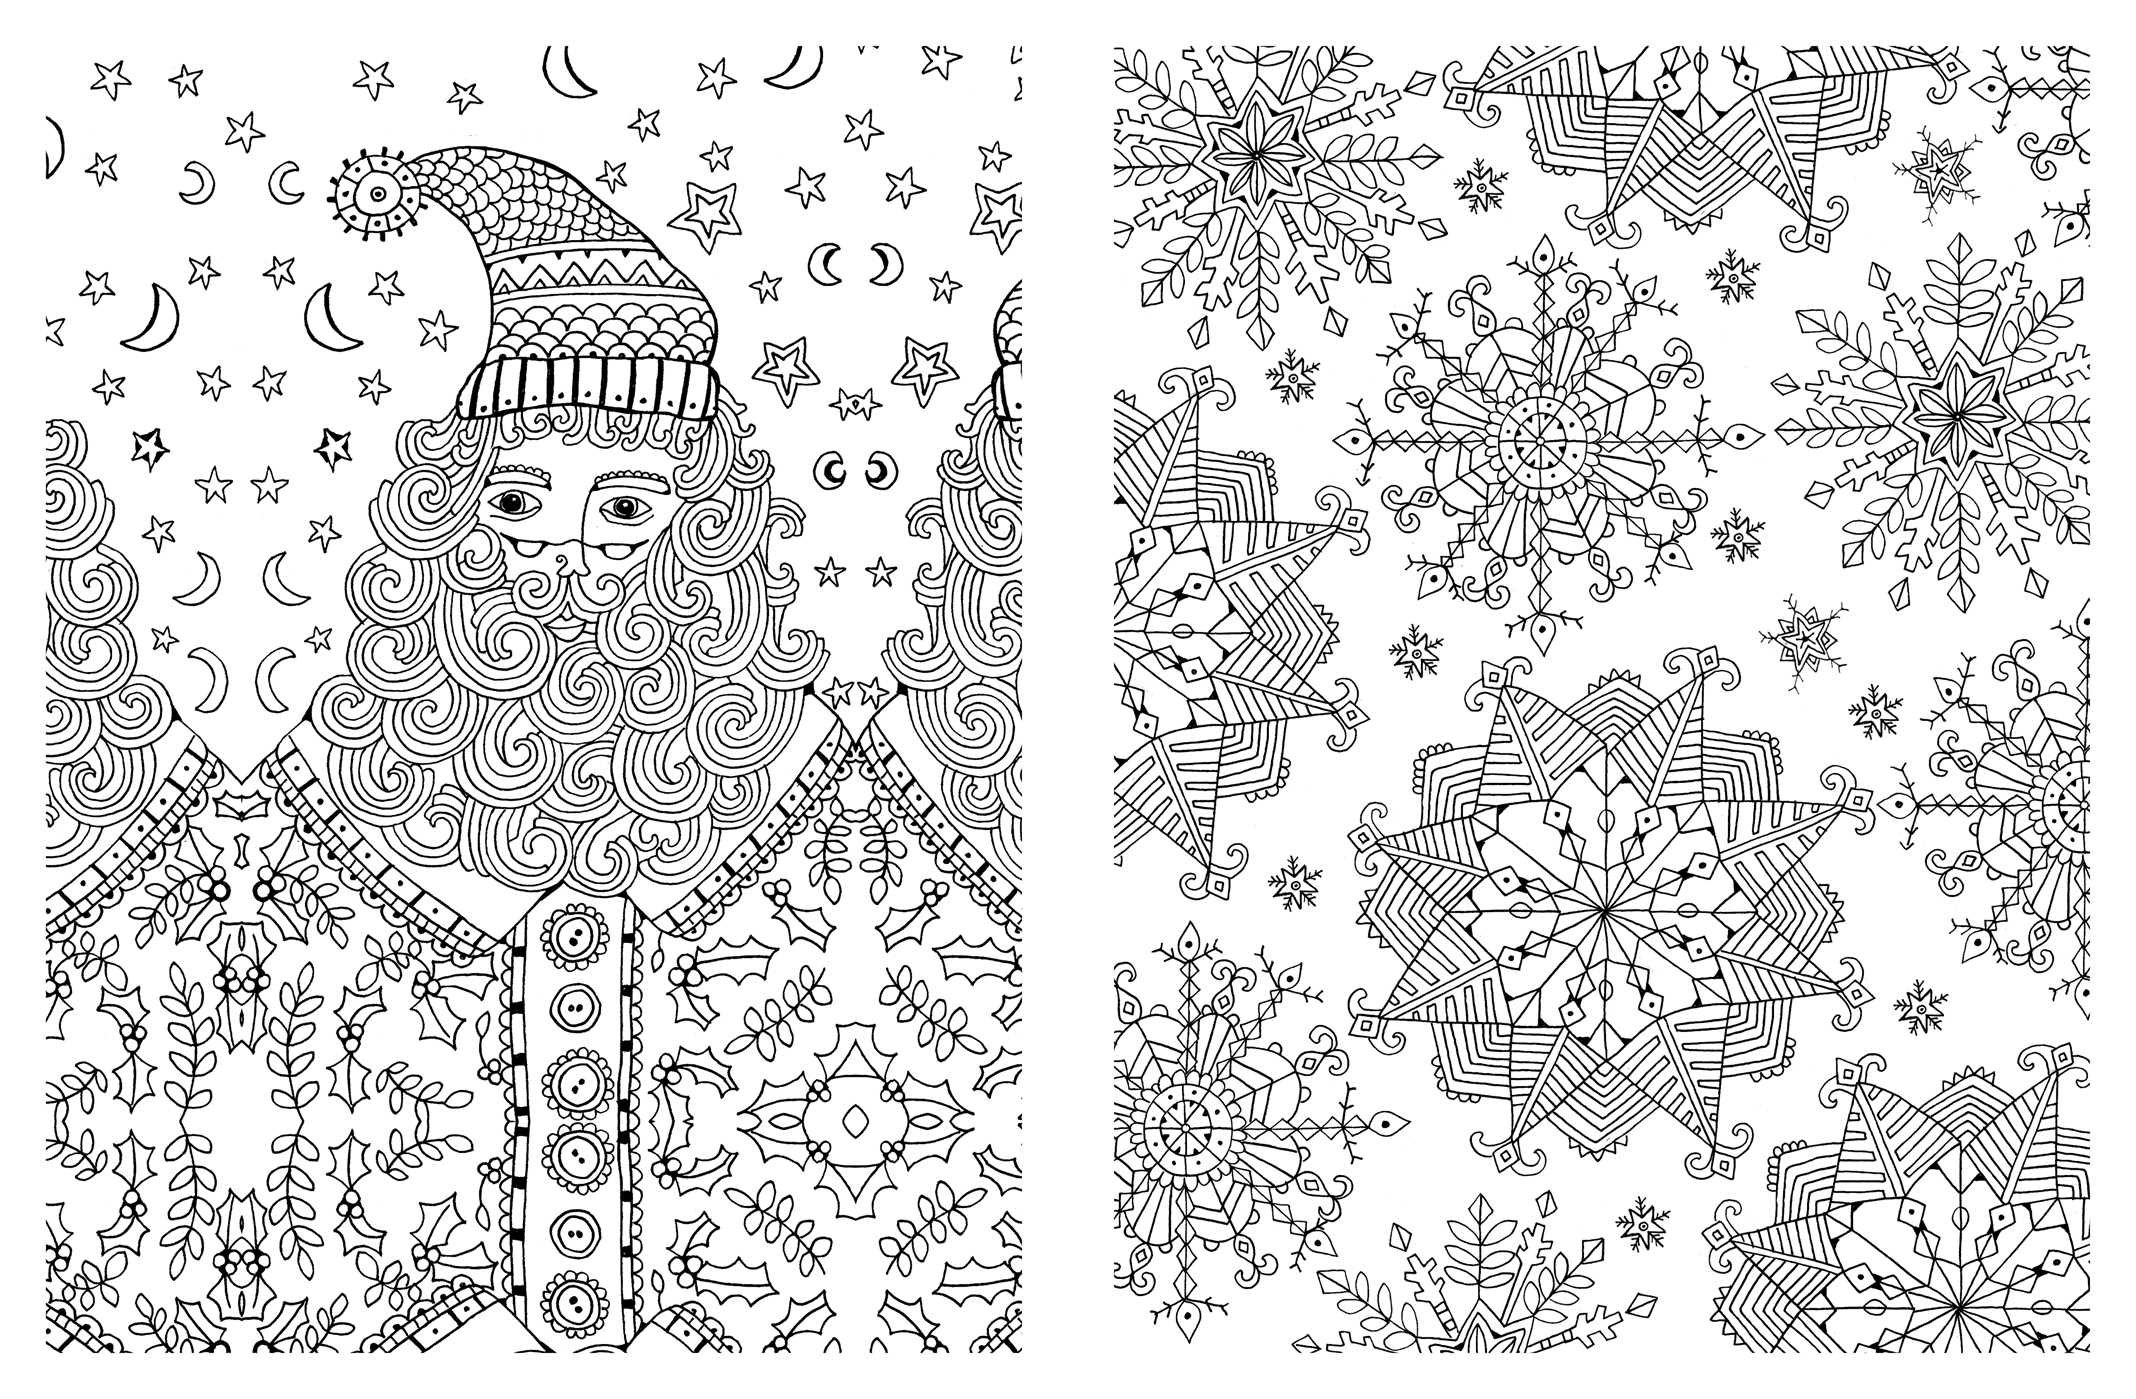 - Amazon.com: Posh Adult Coloring Book: Christmas Designs For Fun